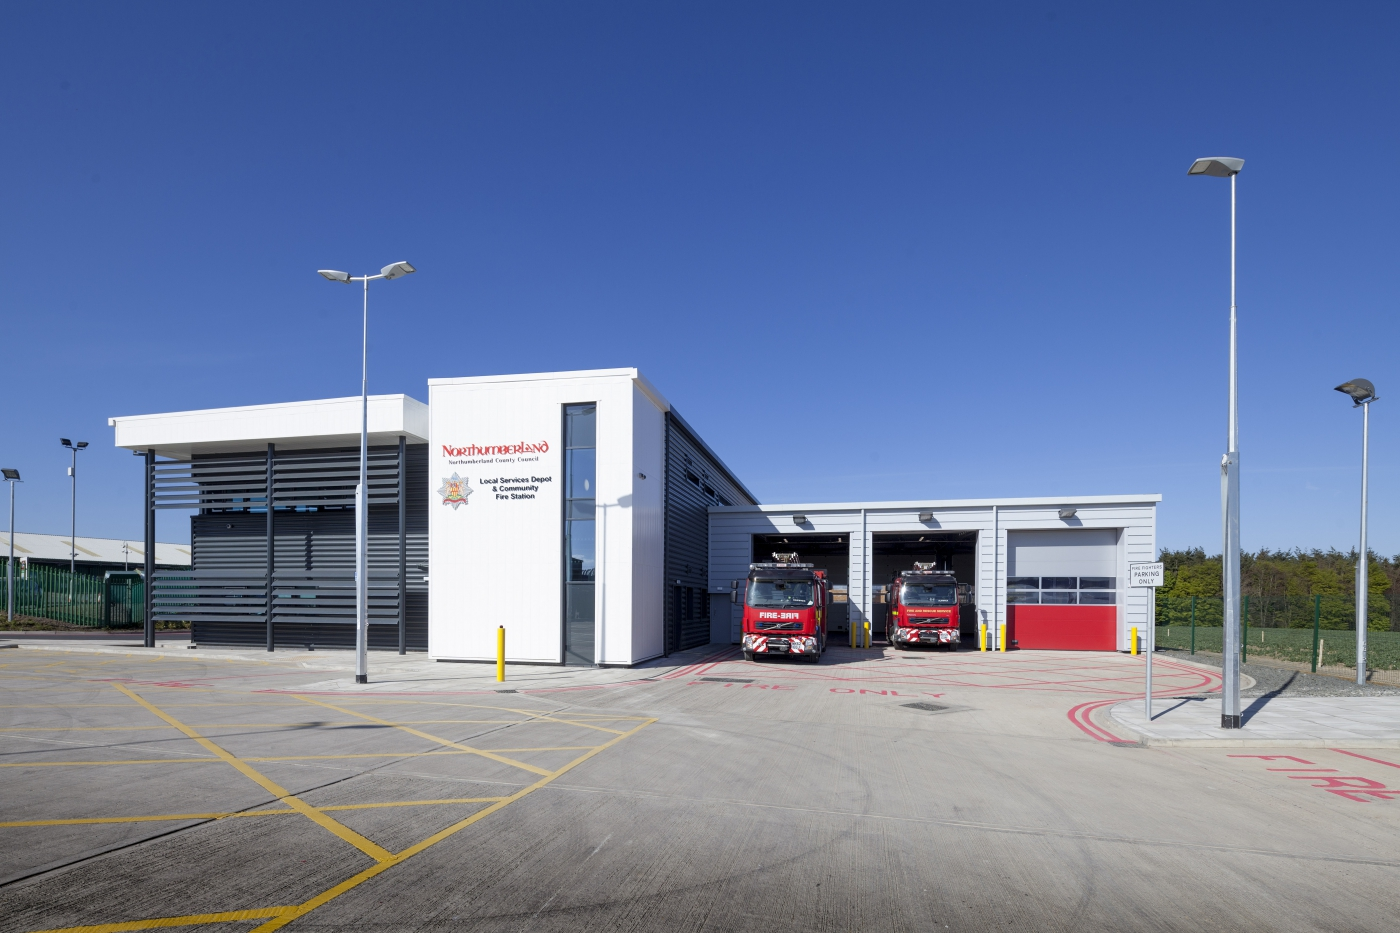 NCC Fire & Rescue completed and open to serve